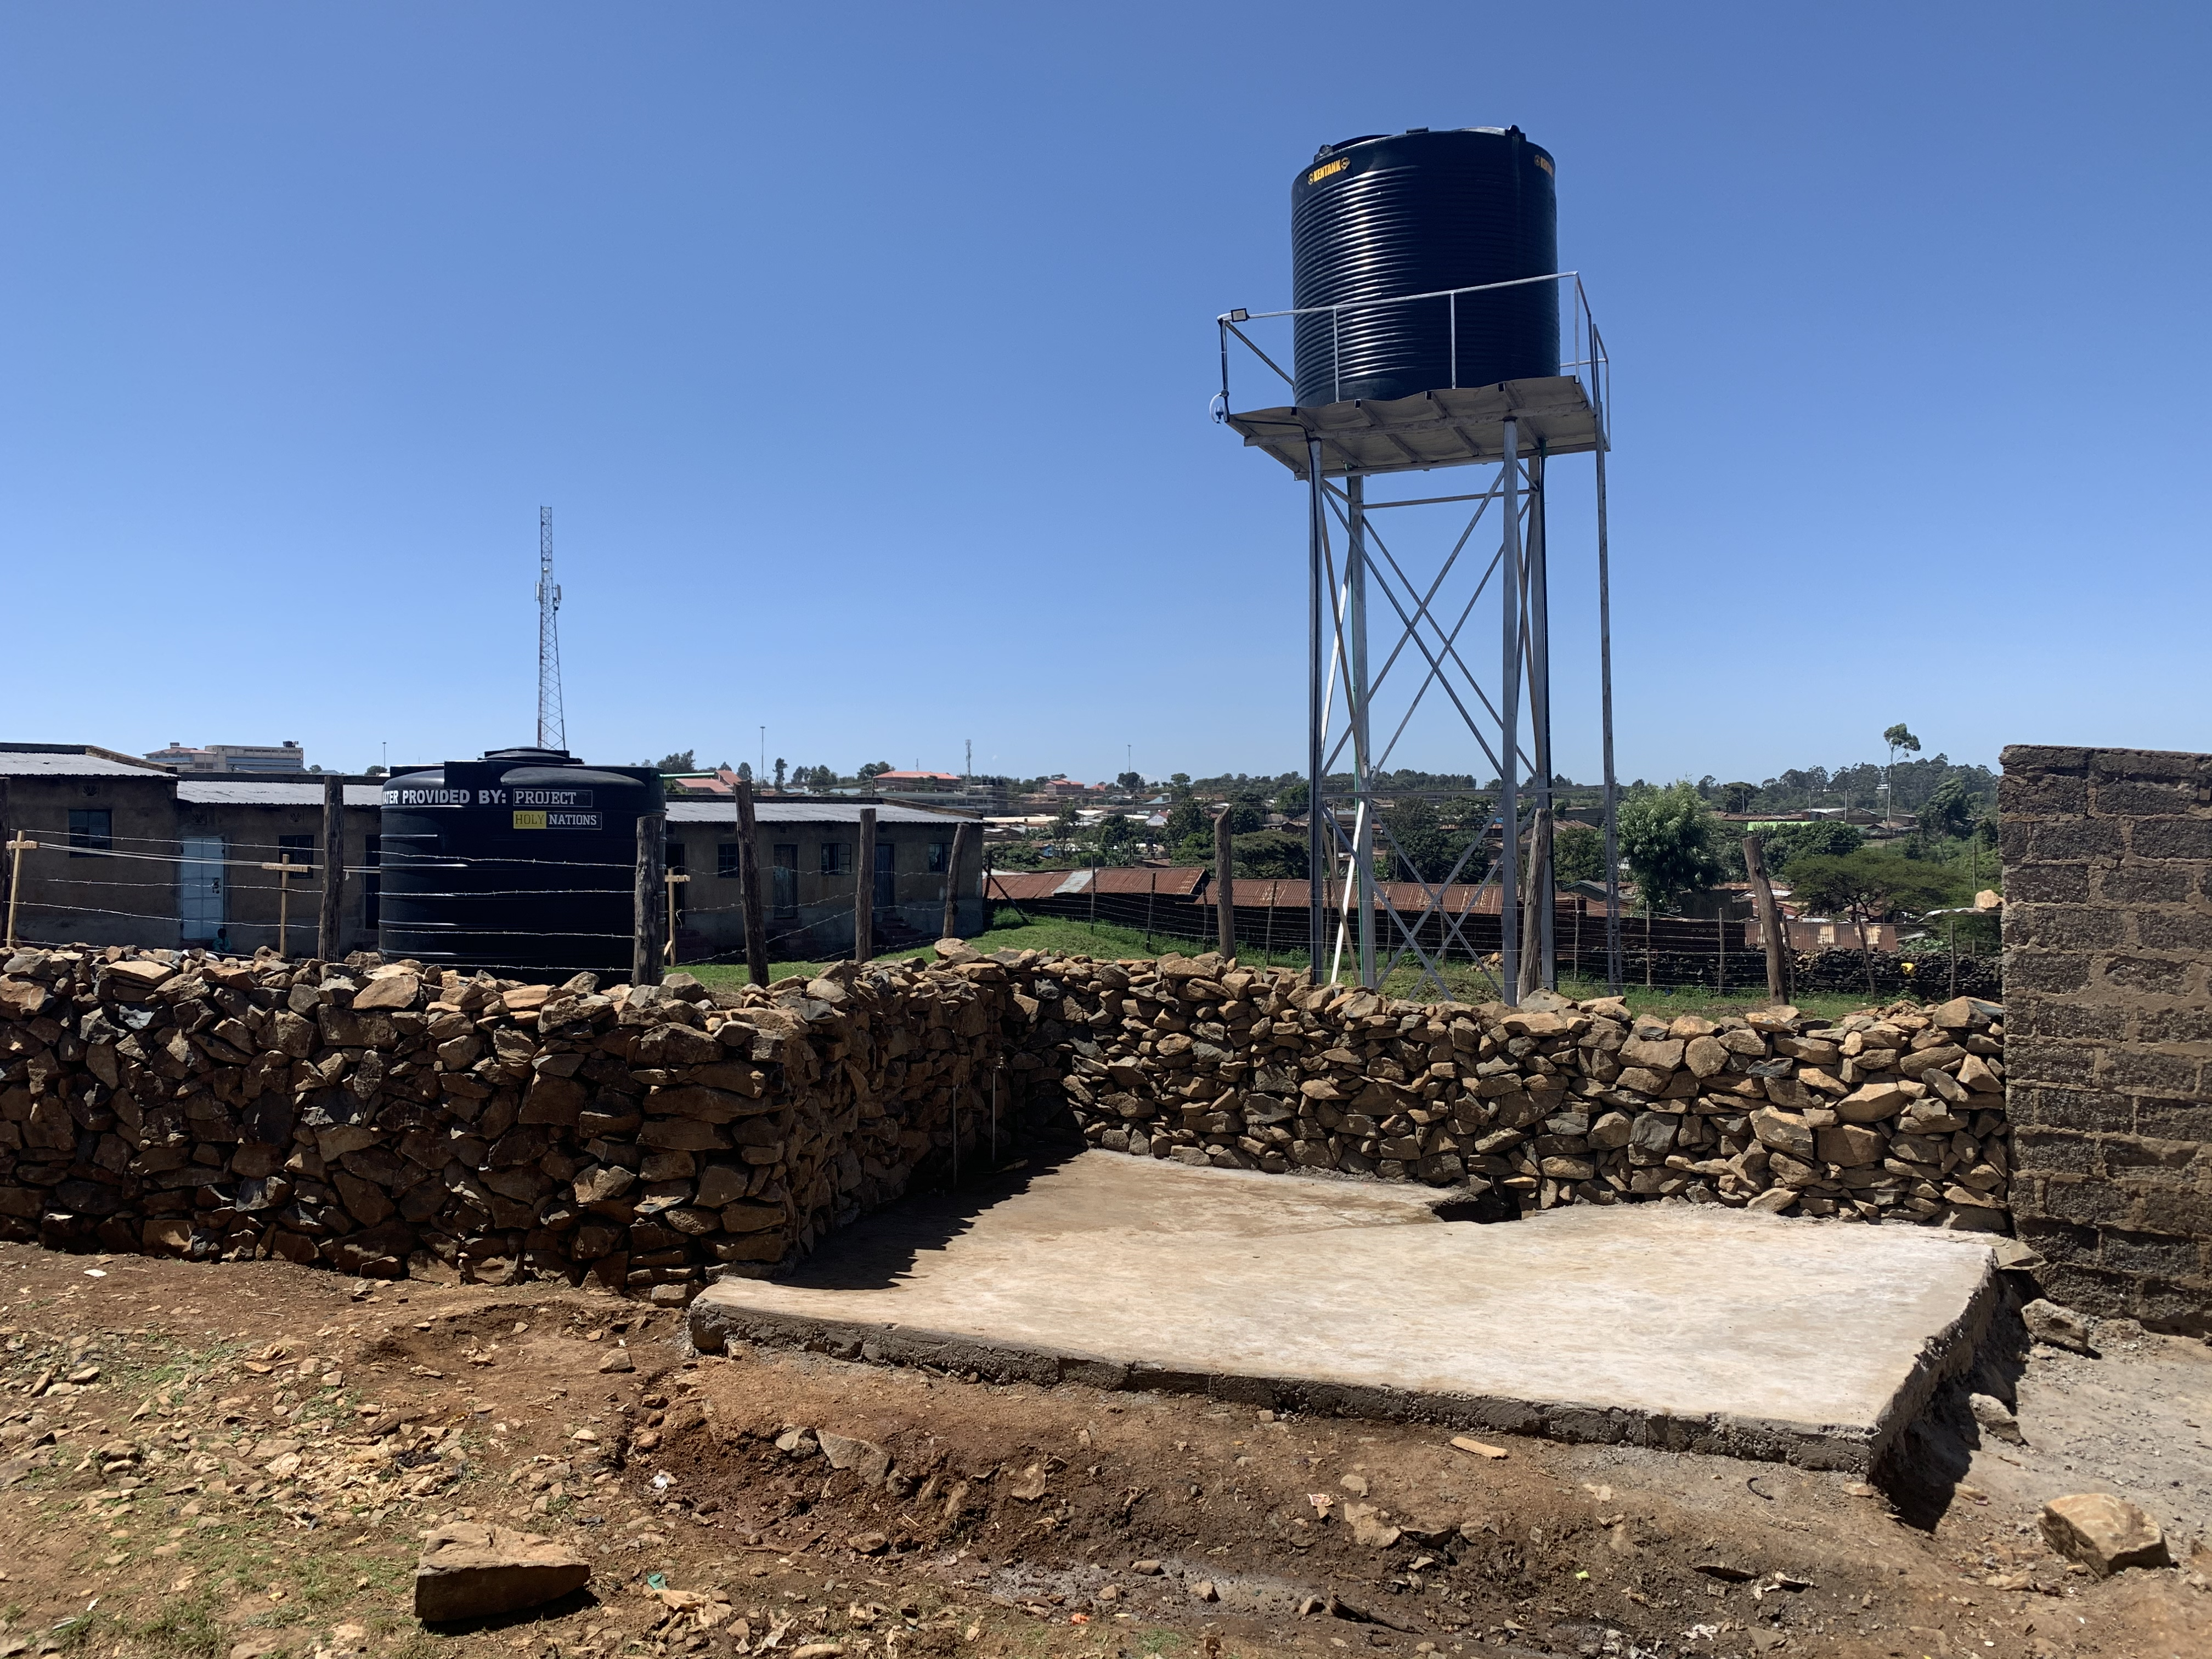 2 Water tanks to serve the community